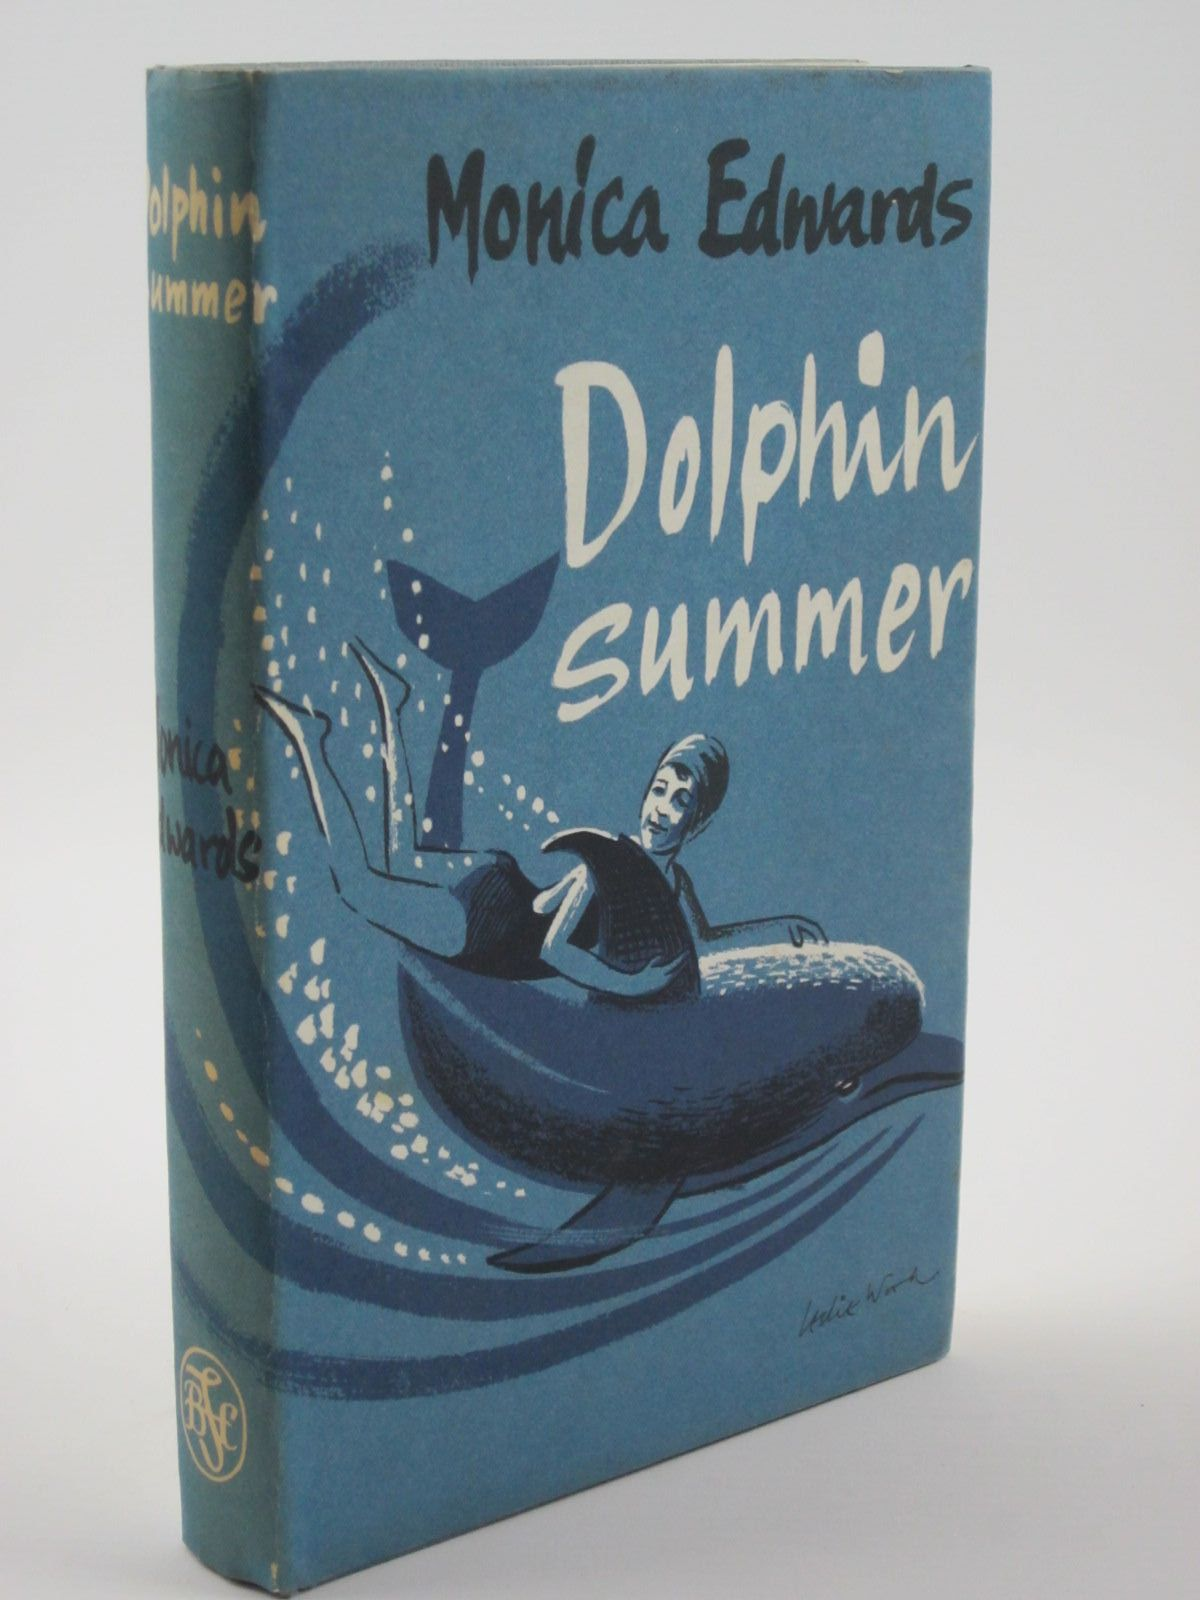 Photo of DOLPHIN SUMMER written by Edwards, Monica illustrated by Whittam, Geoffrey published by The Children's Book Club (STOCK CODE: 1309442)  for sale by Stella & Rose's Books